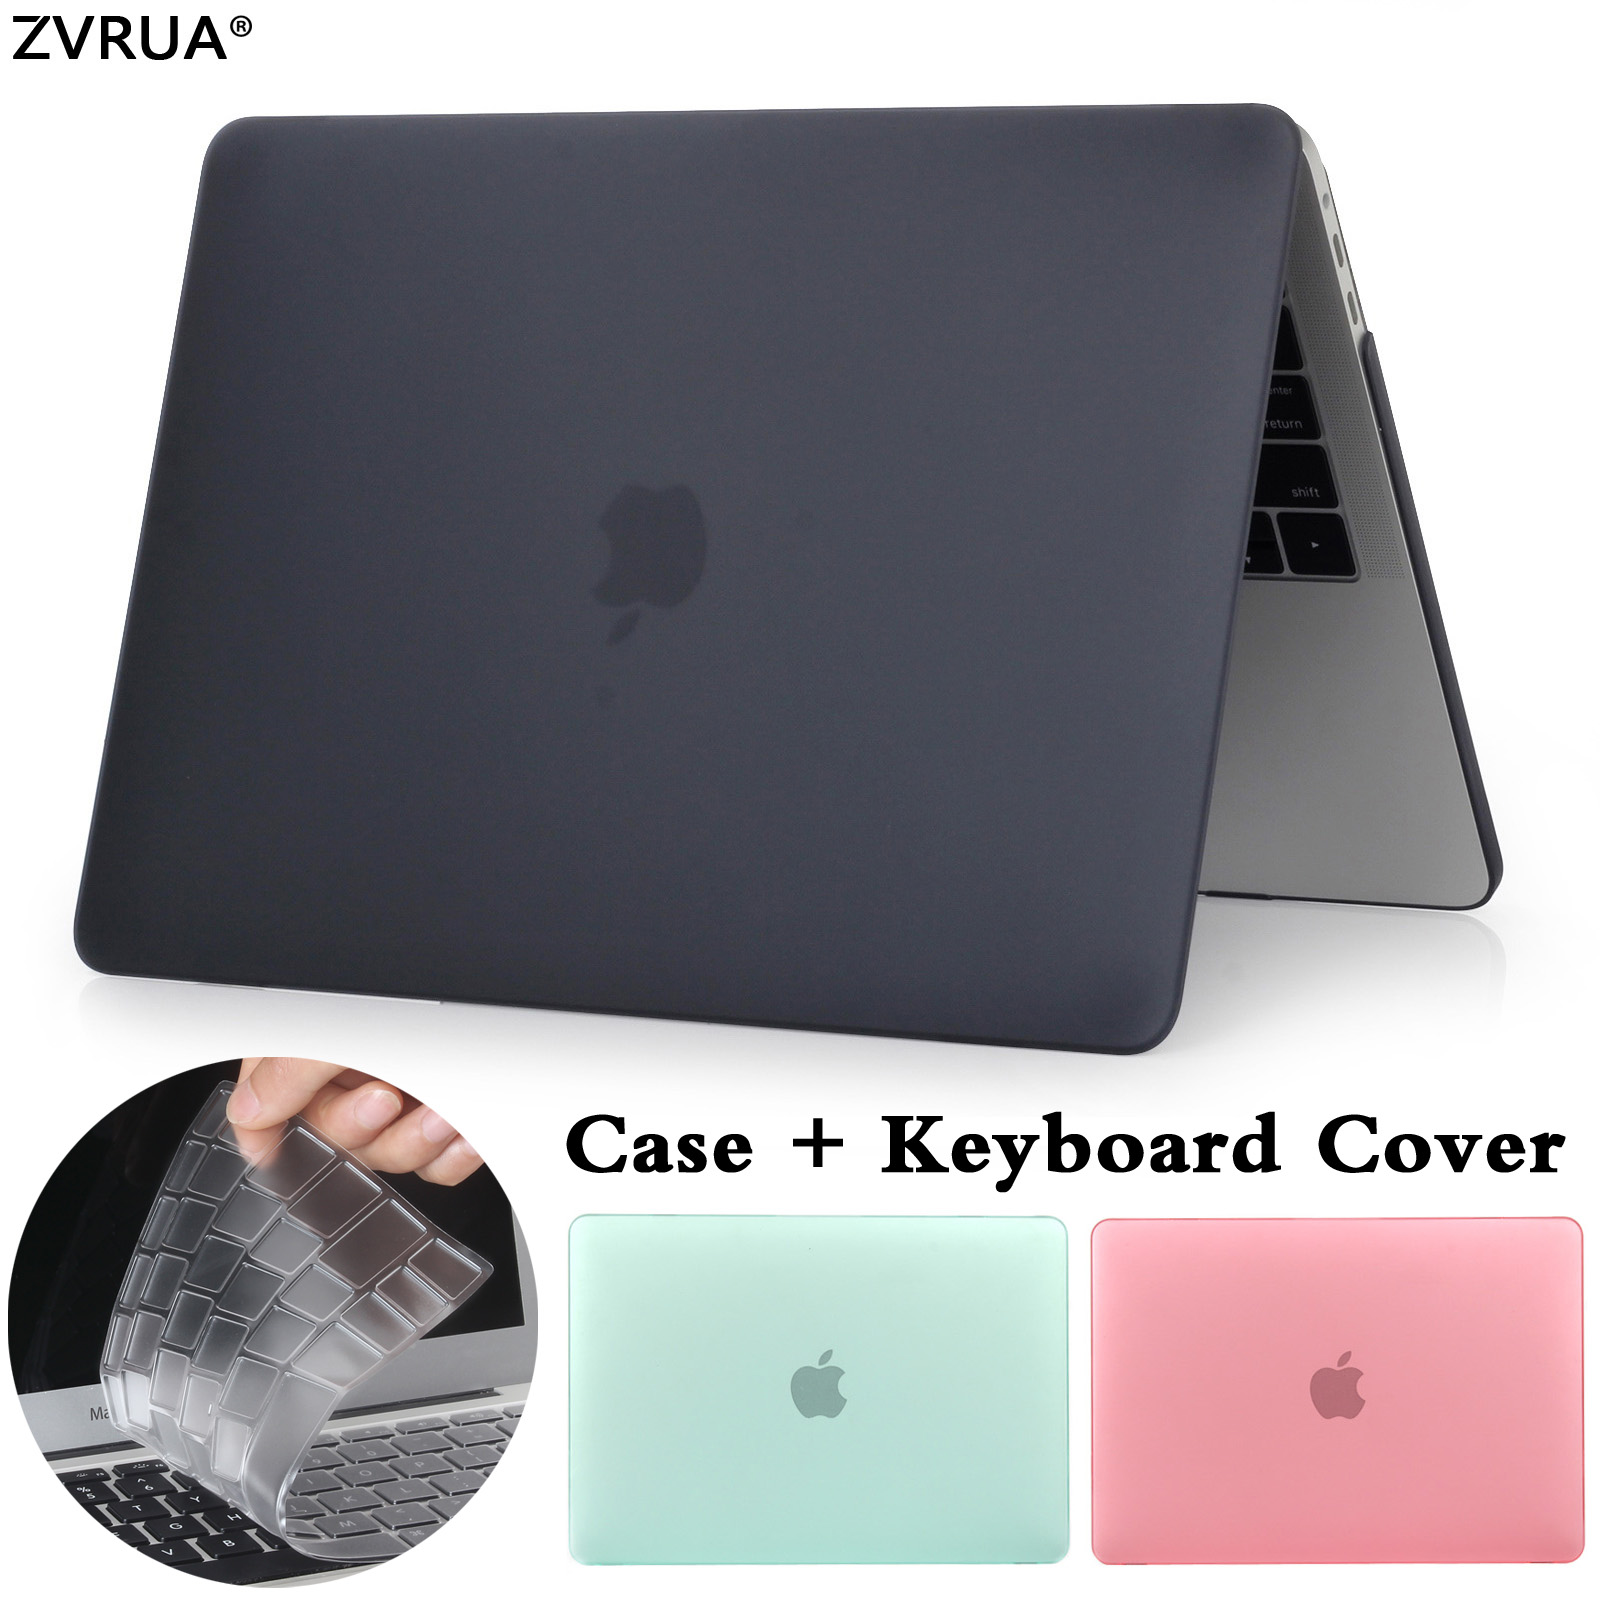 2019 New Hard Matte Frosted Case Cover Sleeve for MacBook Air 11 A1465 air 13 inch A1466 pro 13.3 15 retina A1502 keyboard cover2019 New Hard Matte Frosted Case Cover Sleeve for MacBook Air 11 A1465 air 13 inch A1466 pro 13.3 15 retina A1502 keyboard cover